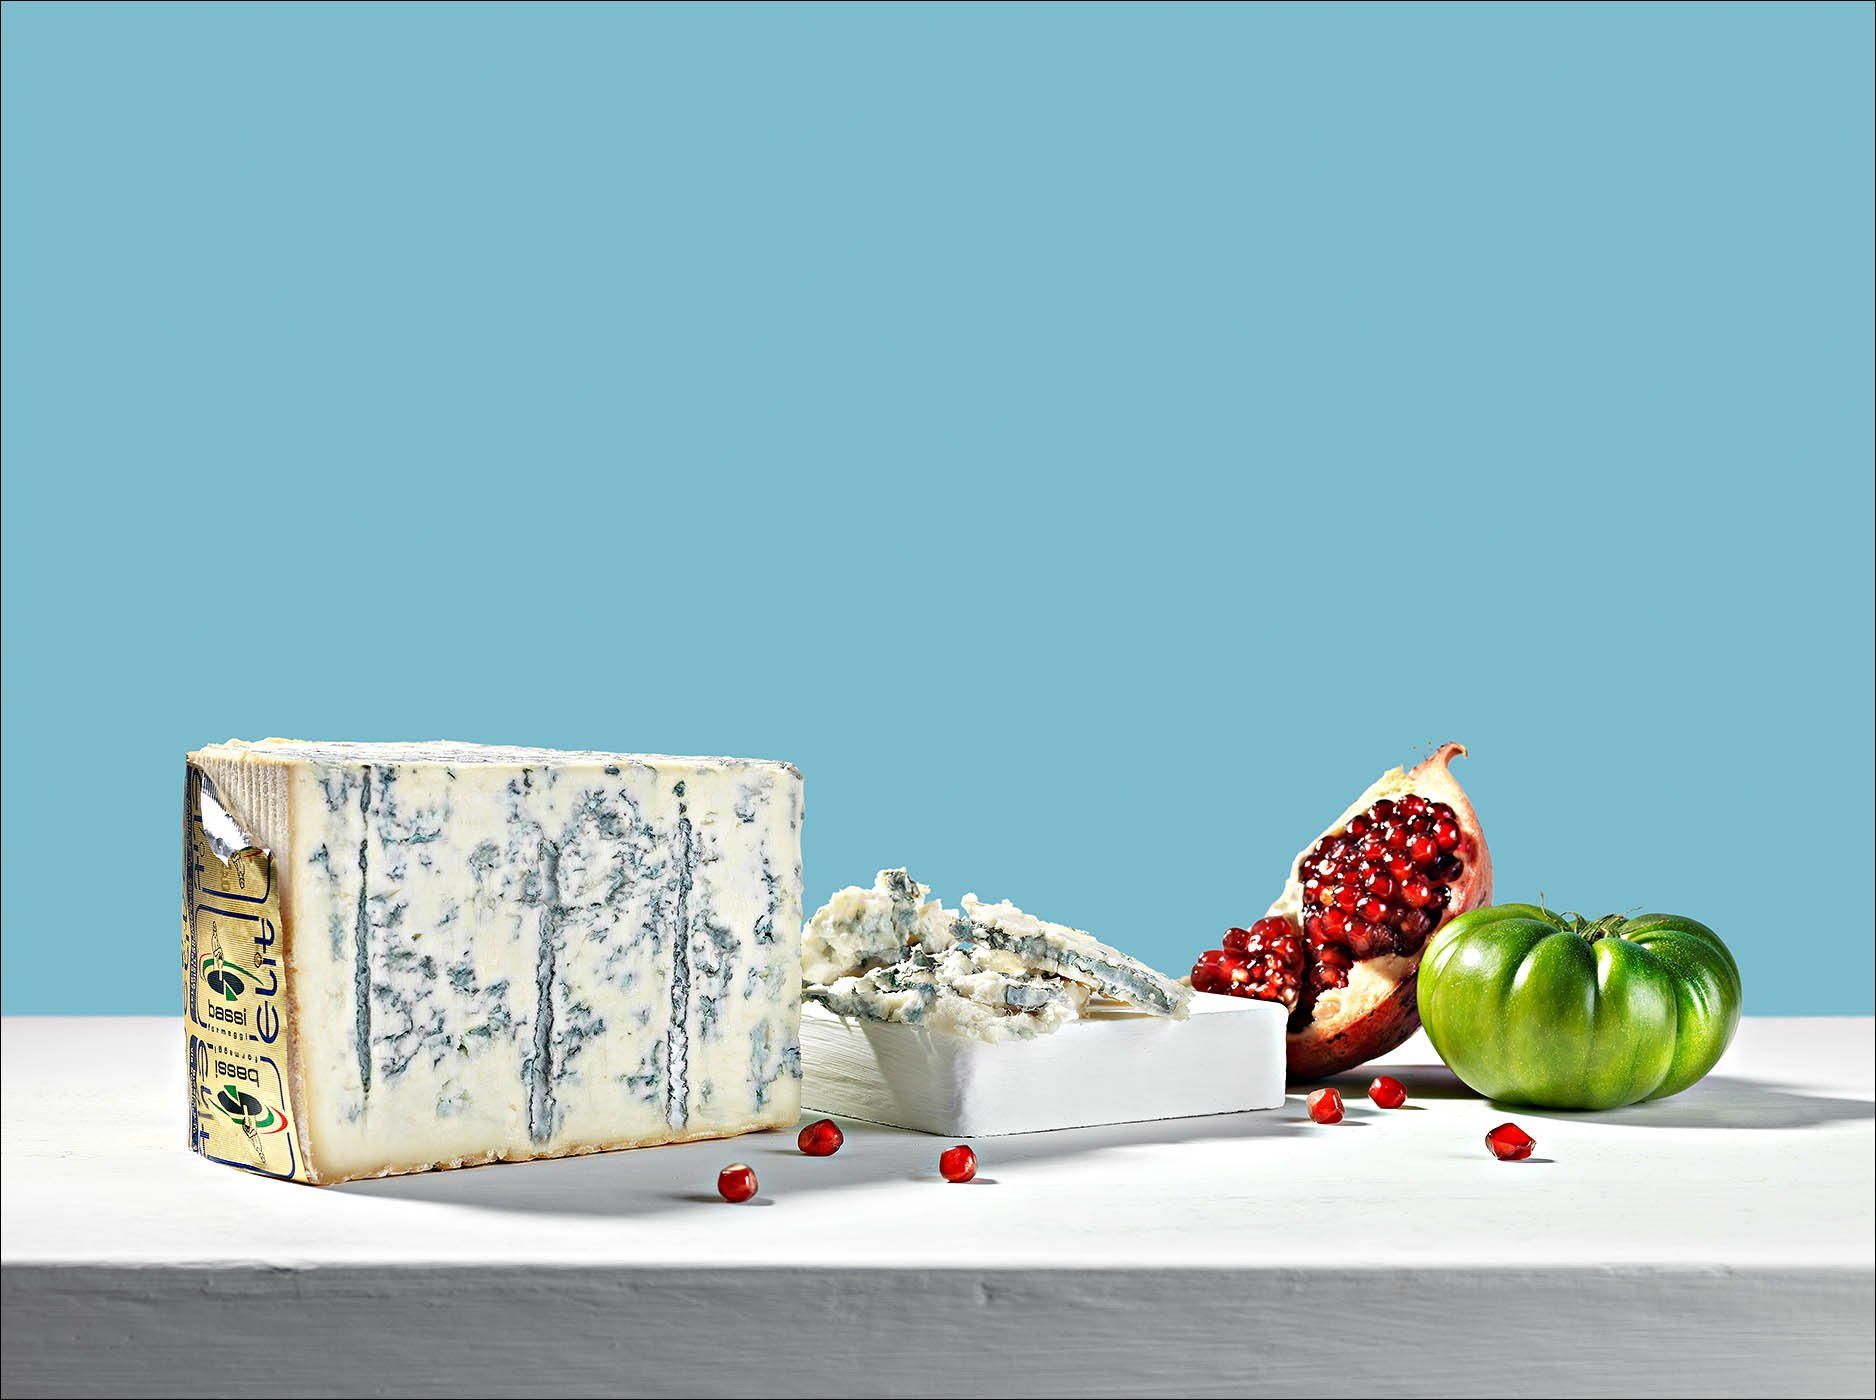 Food fotografo still life Gorgonzola | Andrea Sudati Photo Studio